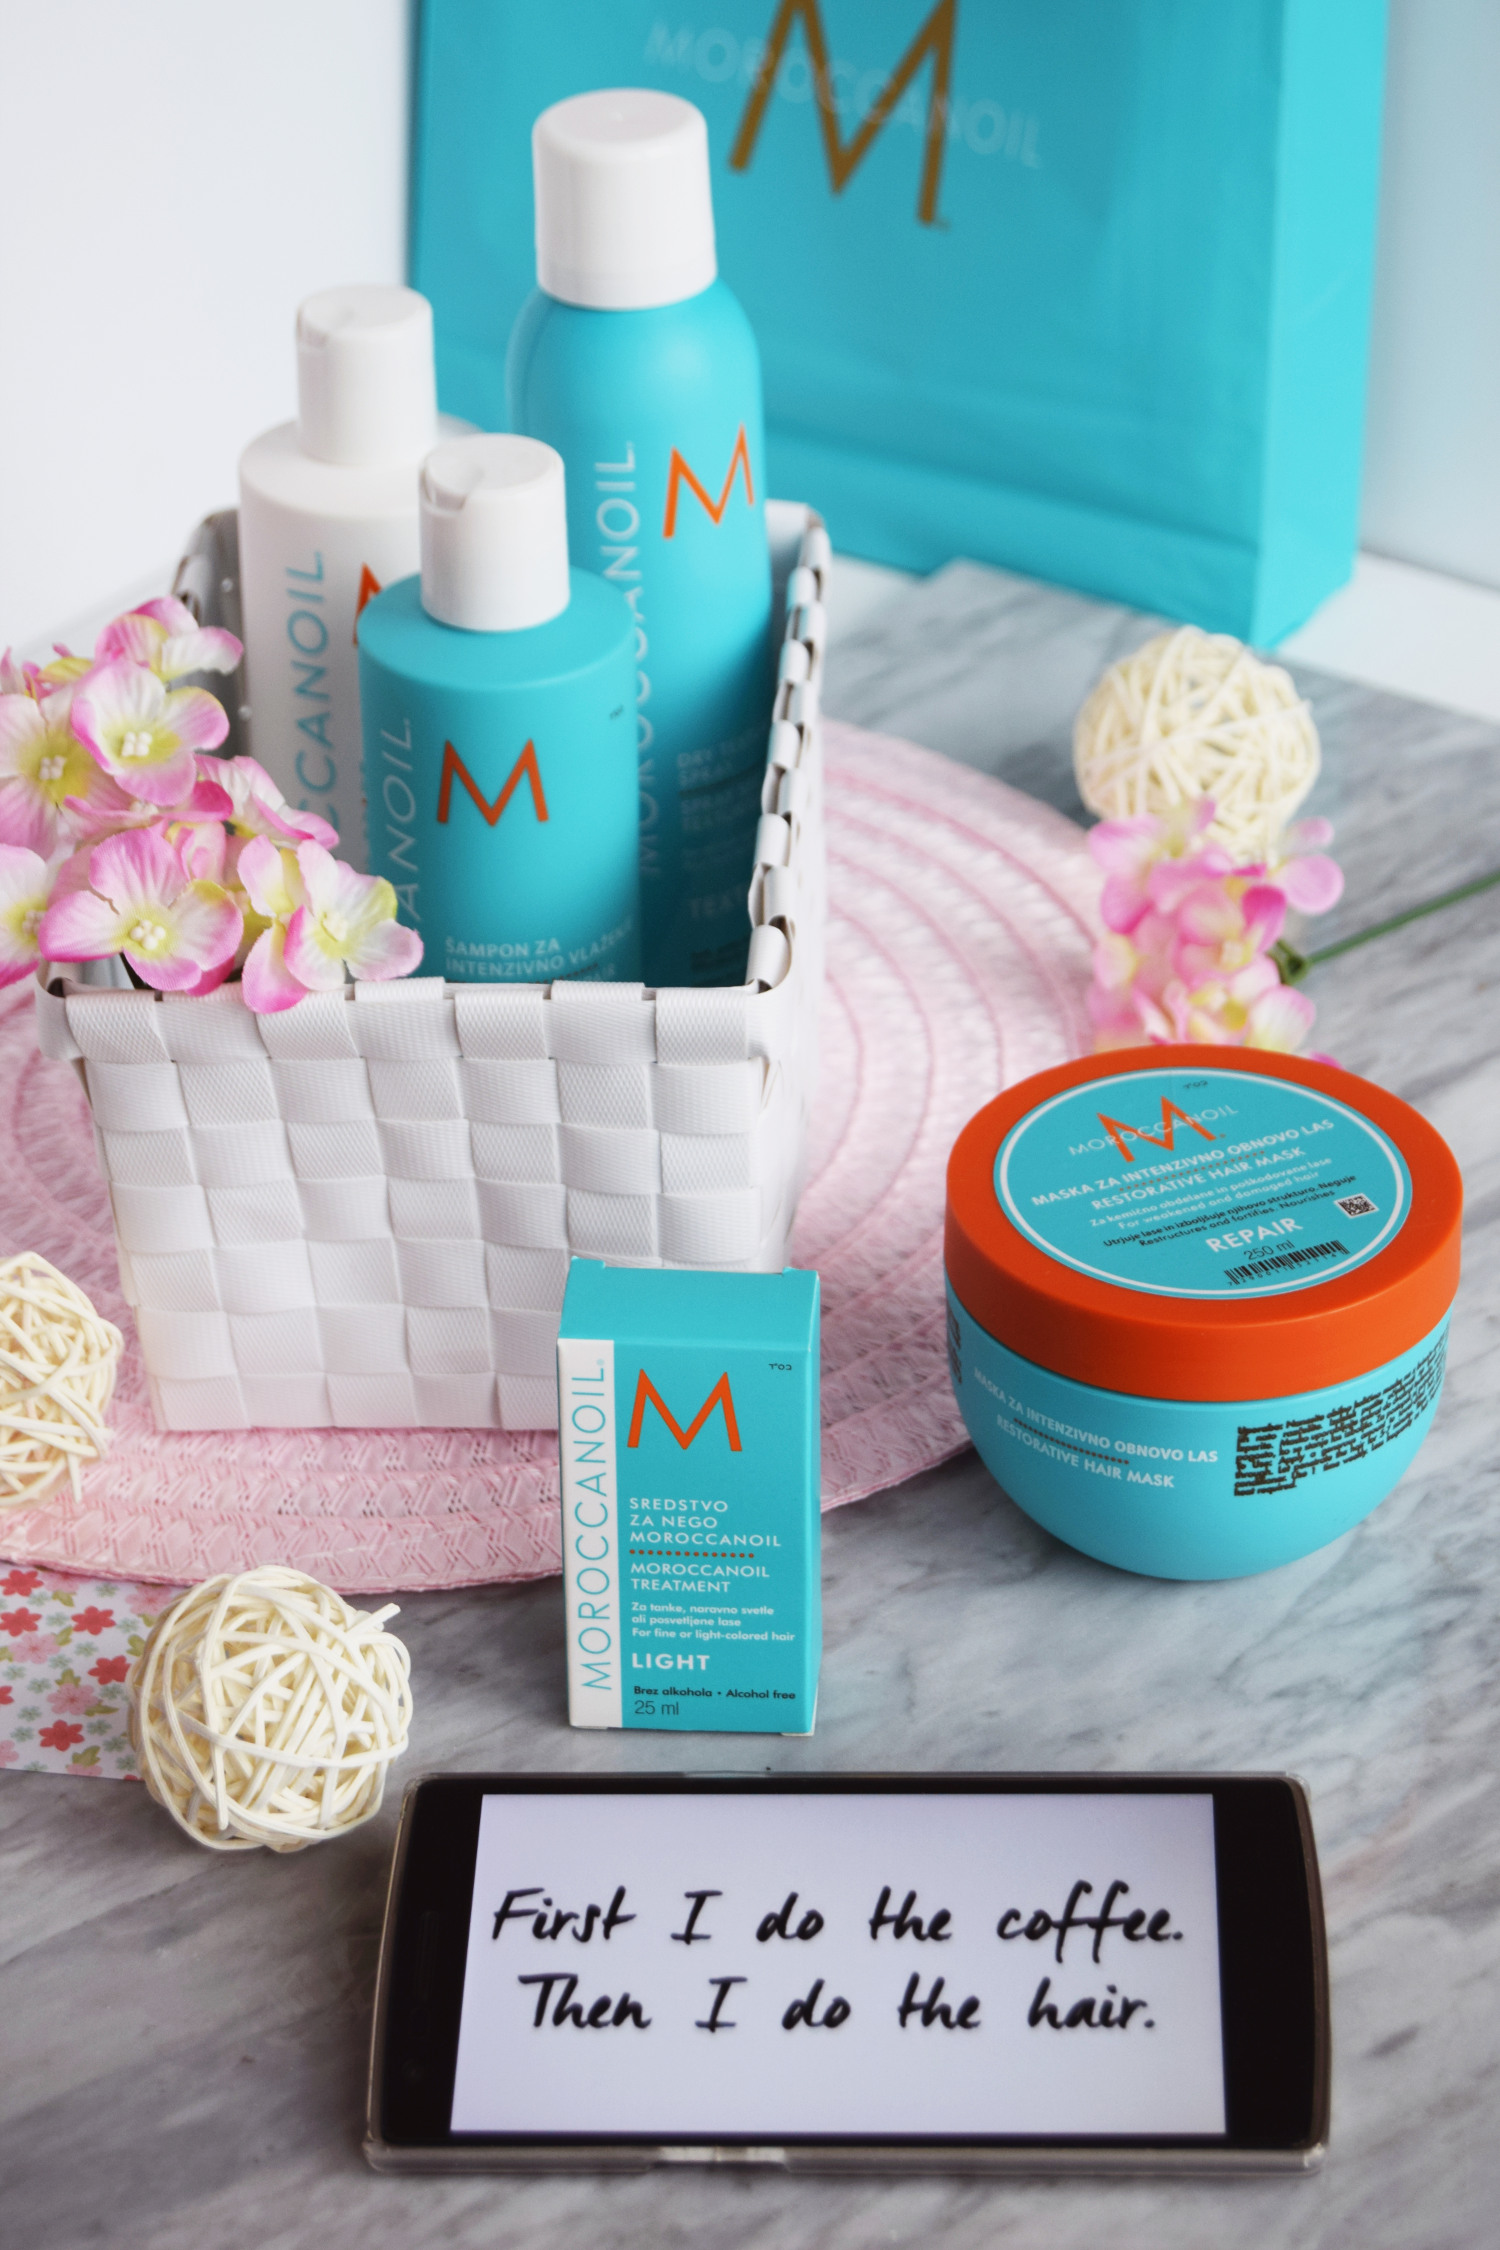 Moroccanoil_hair_Conditioner_Shampoo_Zalabell_beauty_5